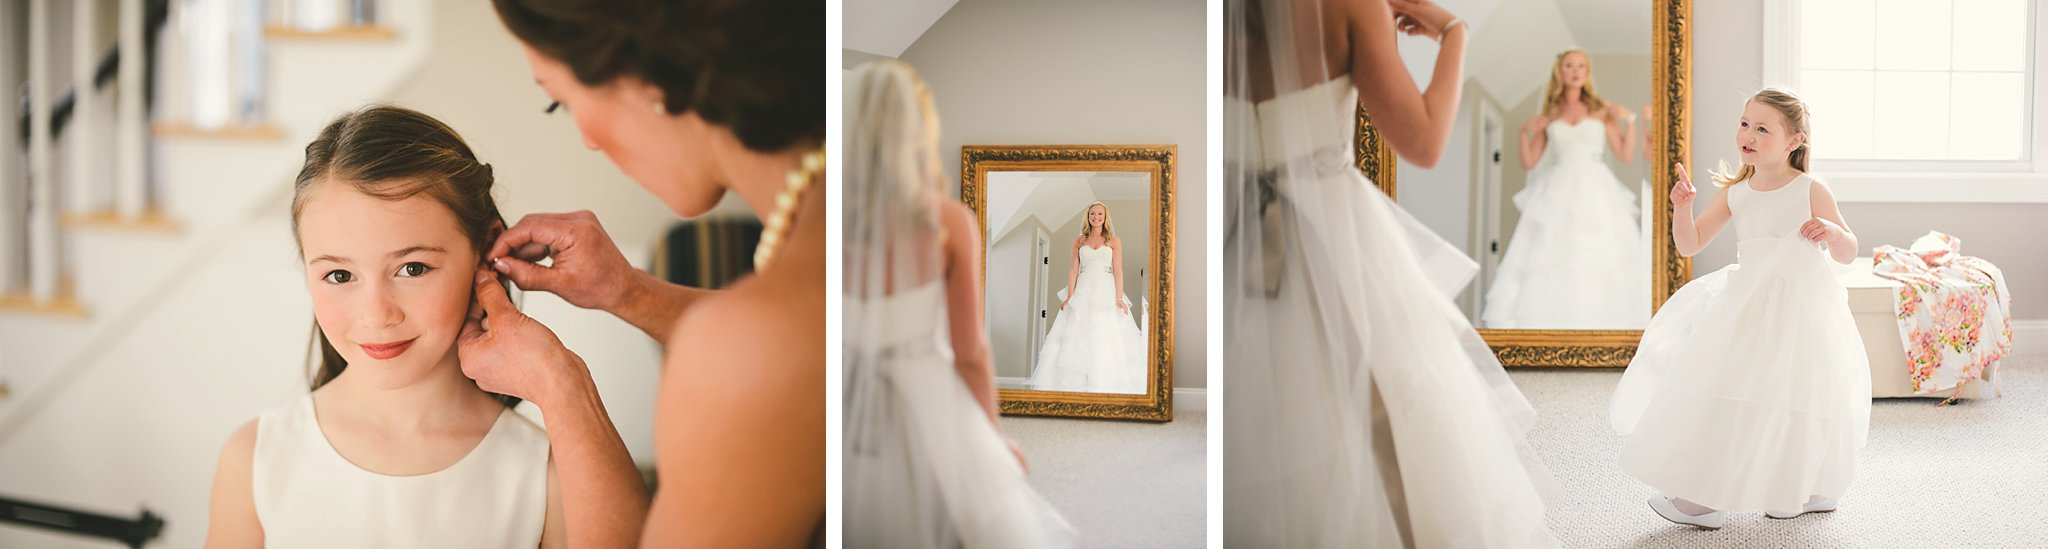 flaherty_wedding0272